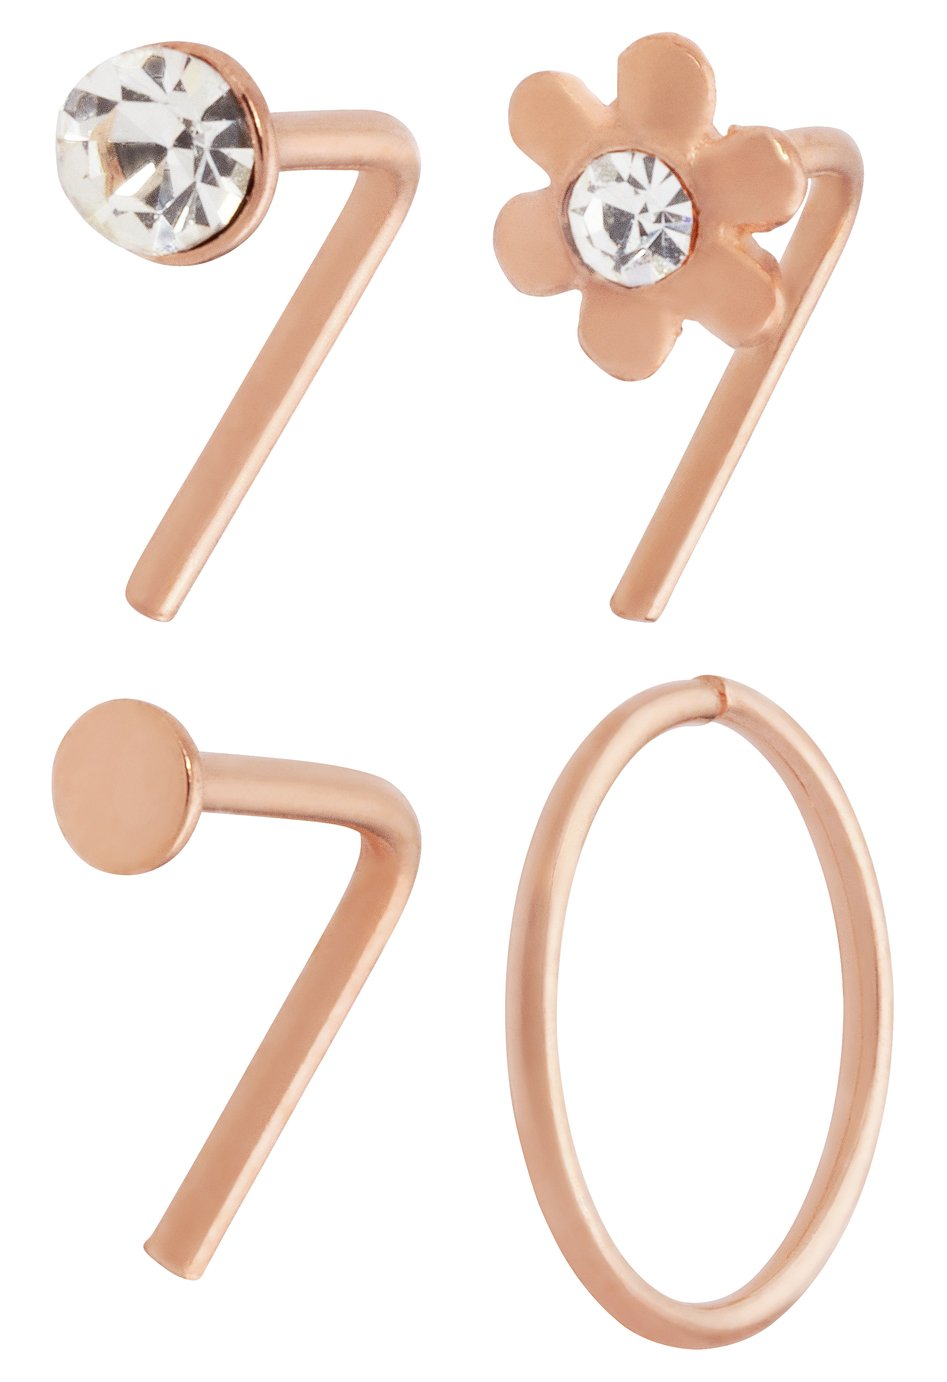 State of Mine Rose Gold Nose Hoop and Stud - Set of 4